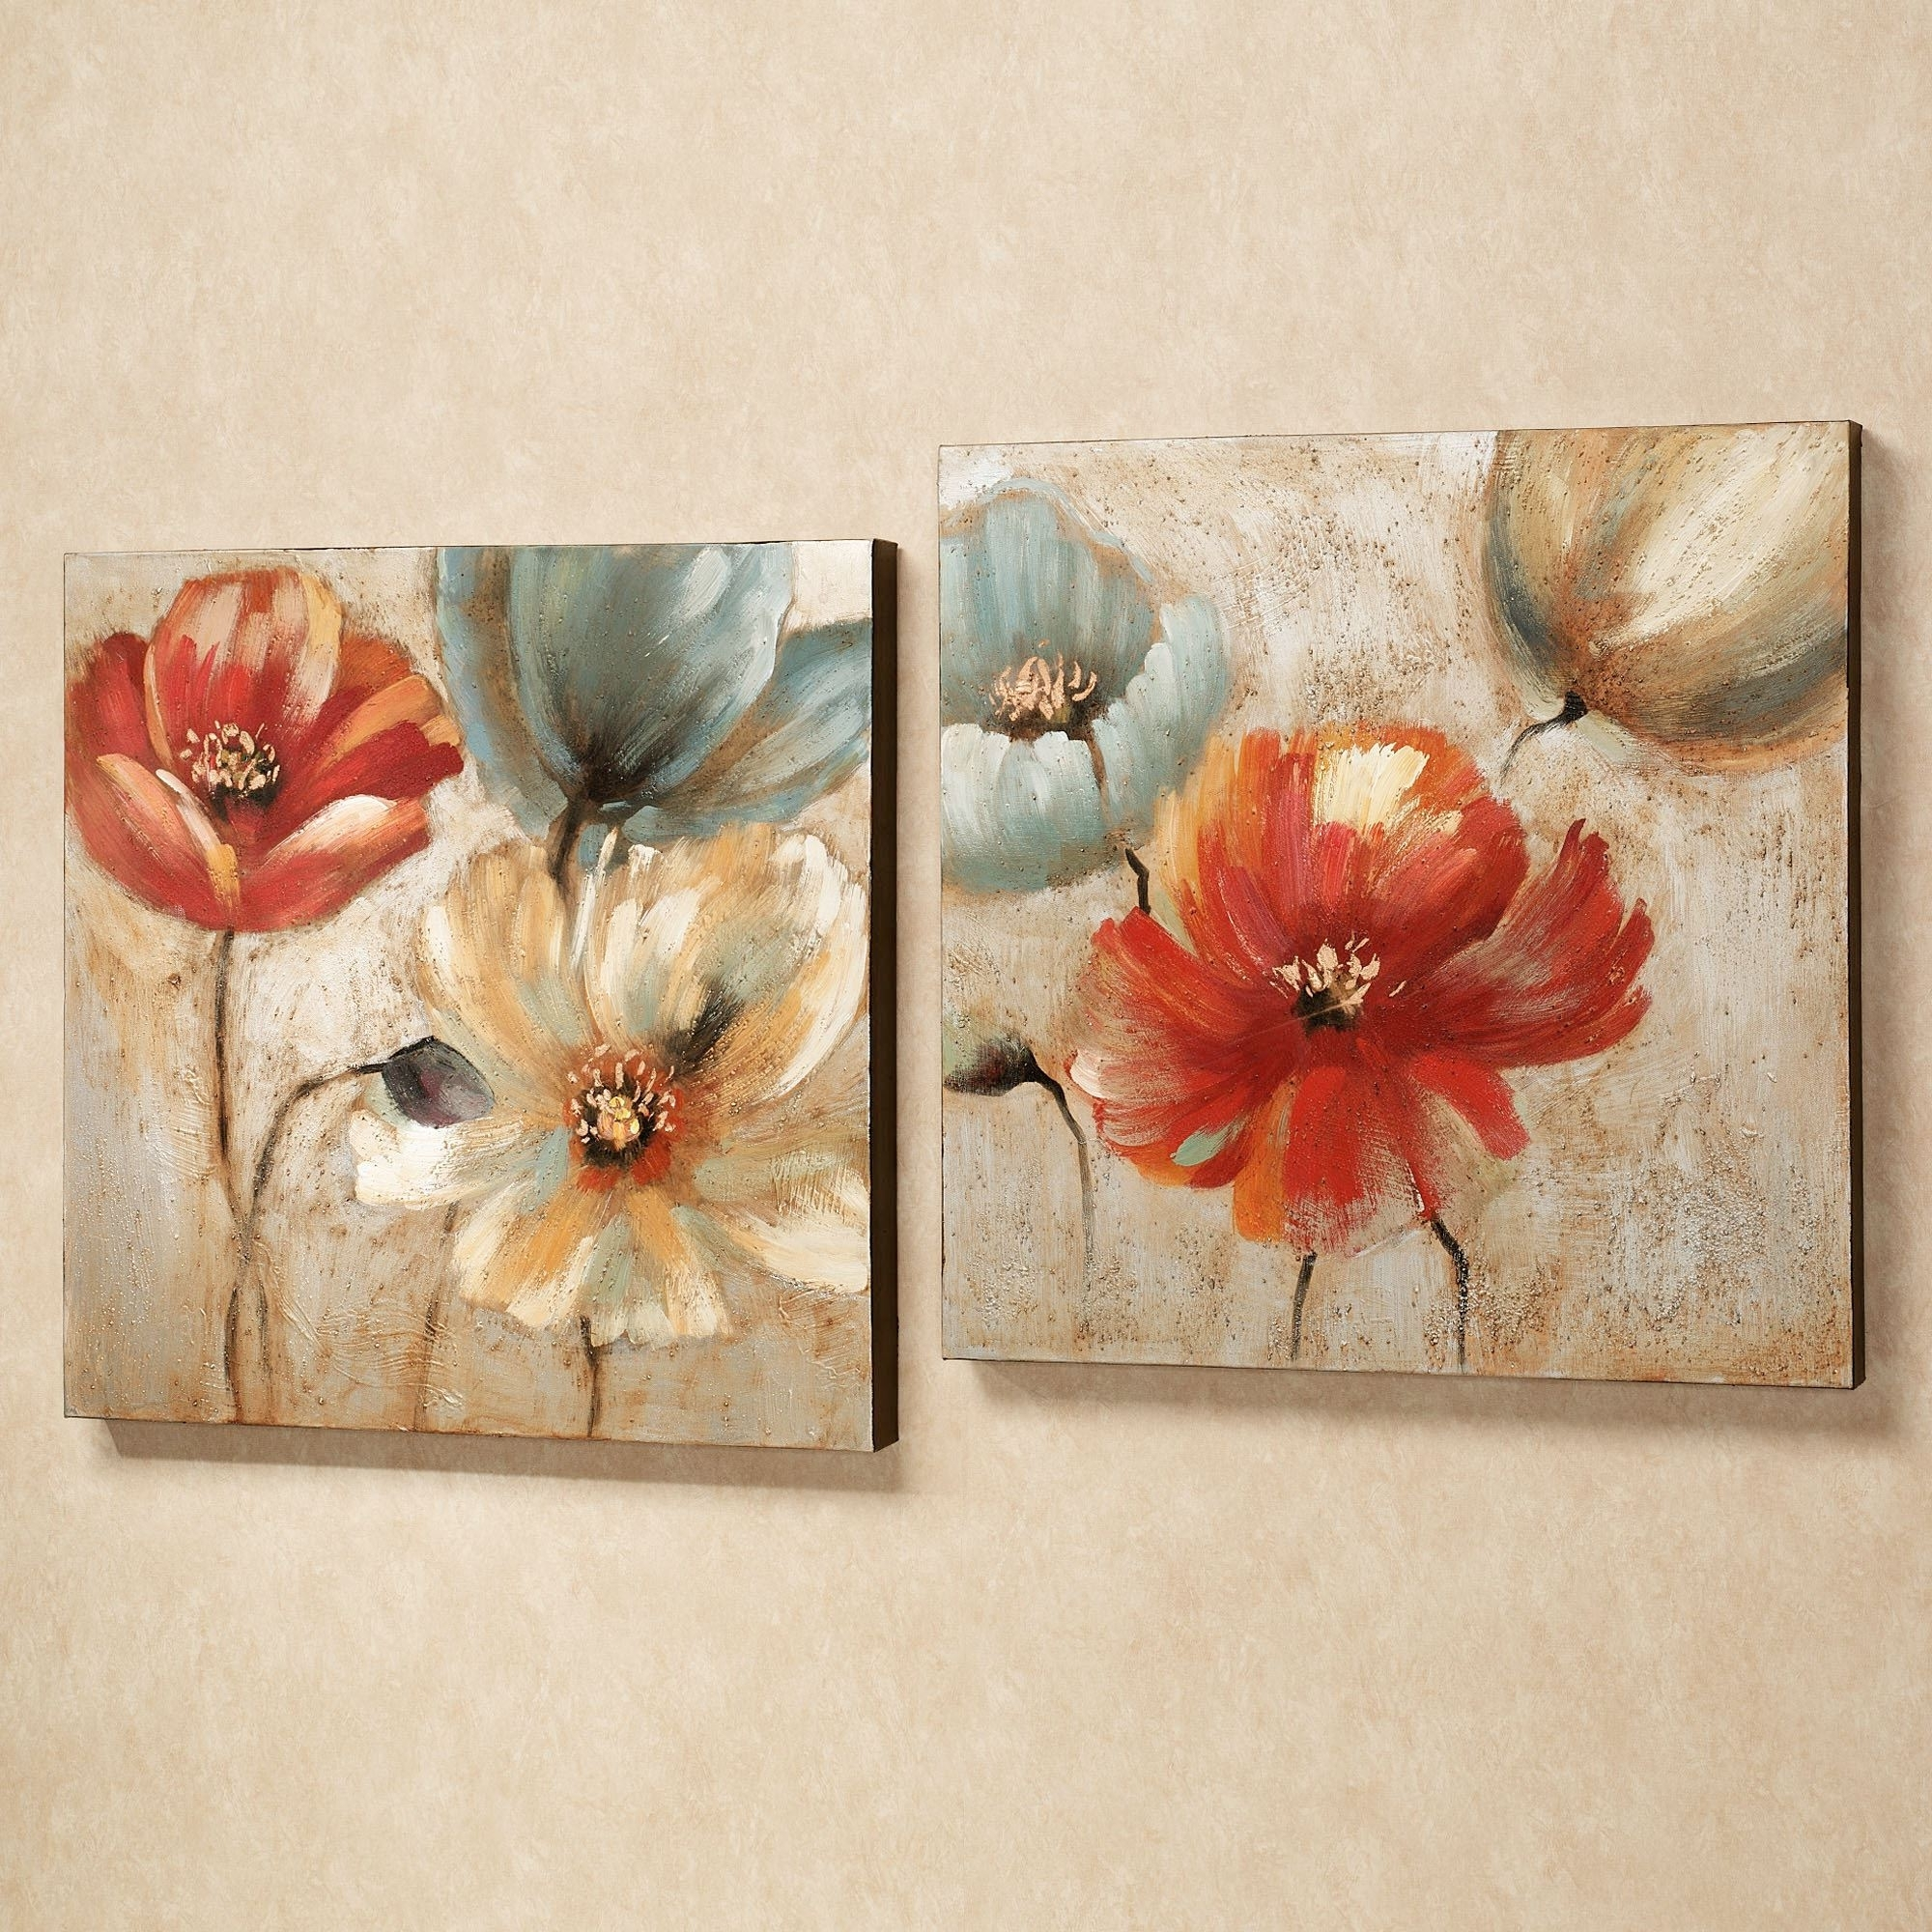 Floral Wall Art Canvas Within Most Popular Joyful Garden Floral Canvas Wall Art Set (View 2 of 15)